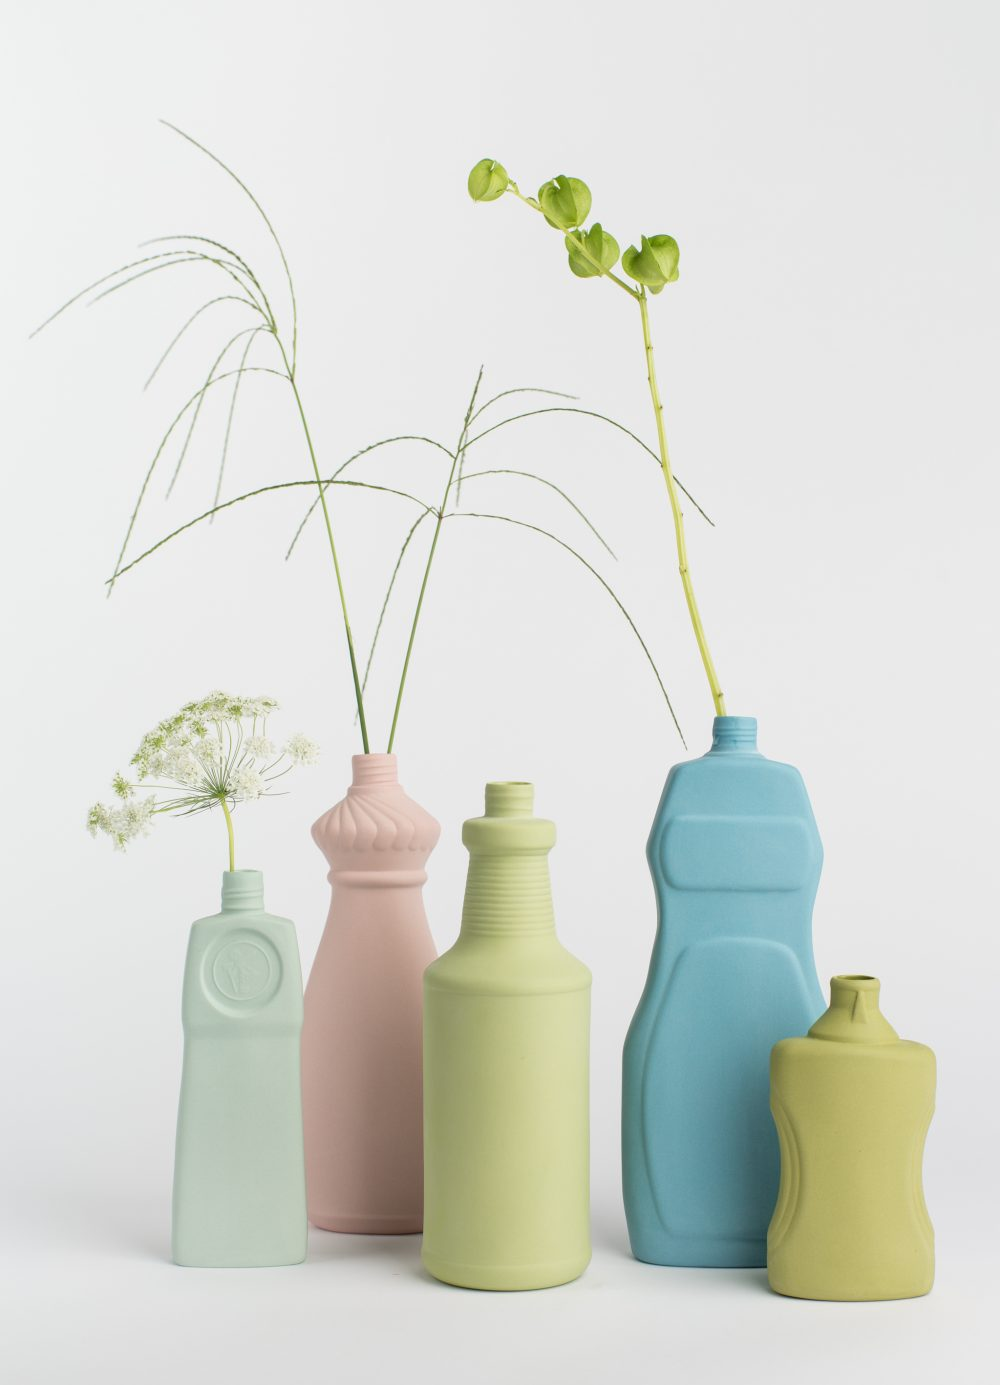 group photo five porcelain vases